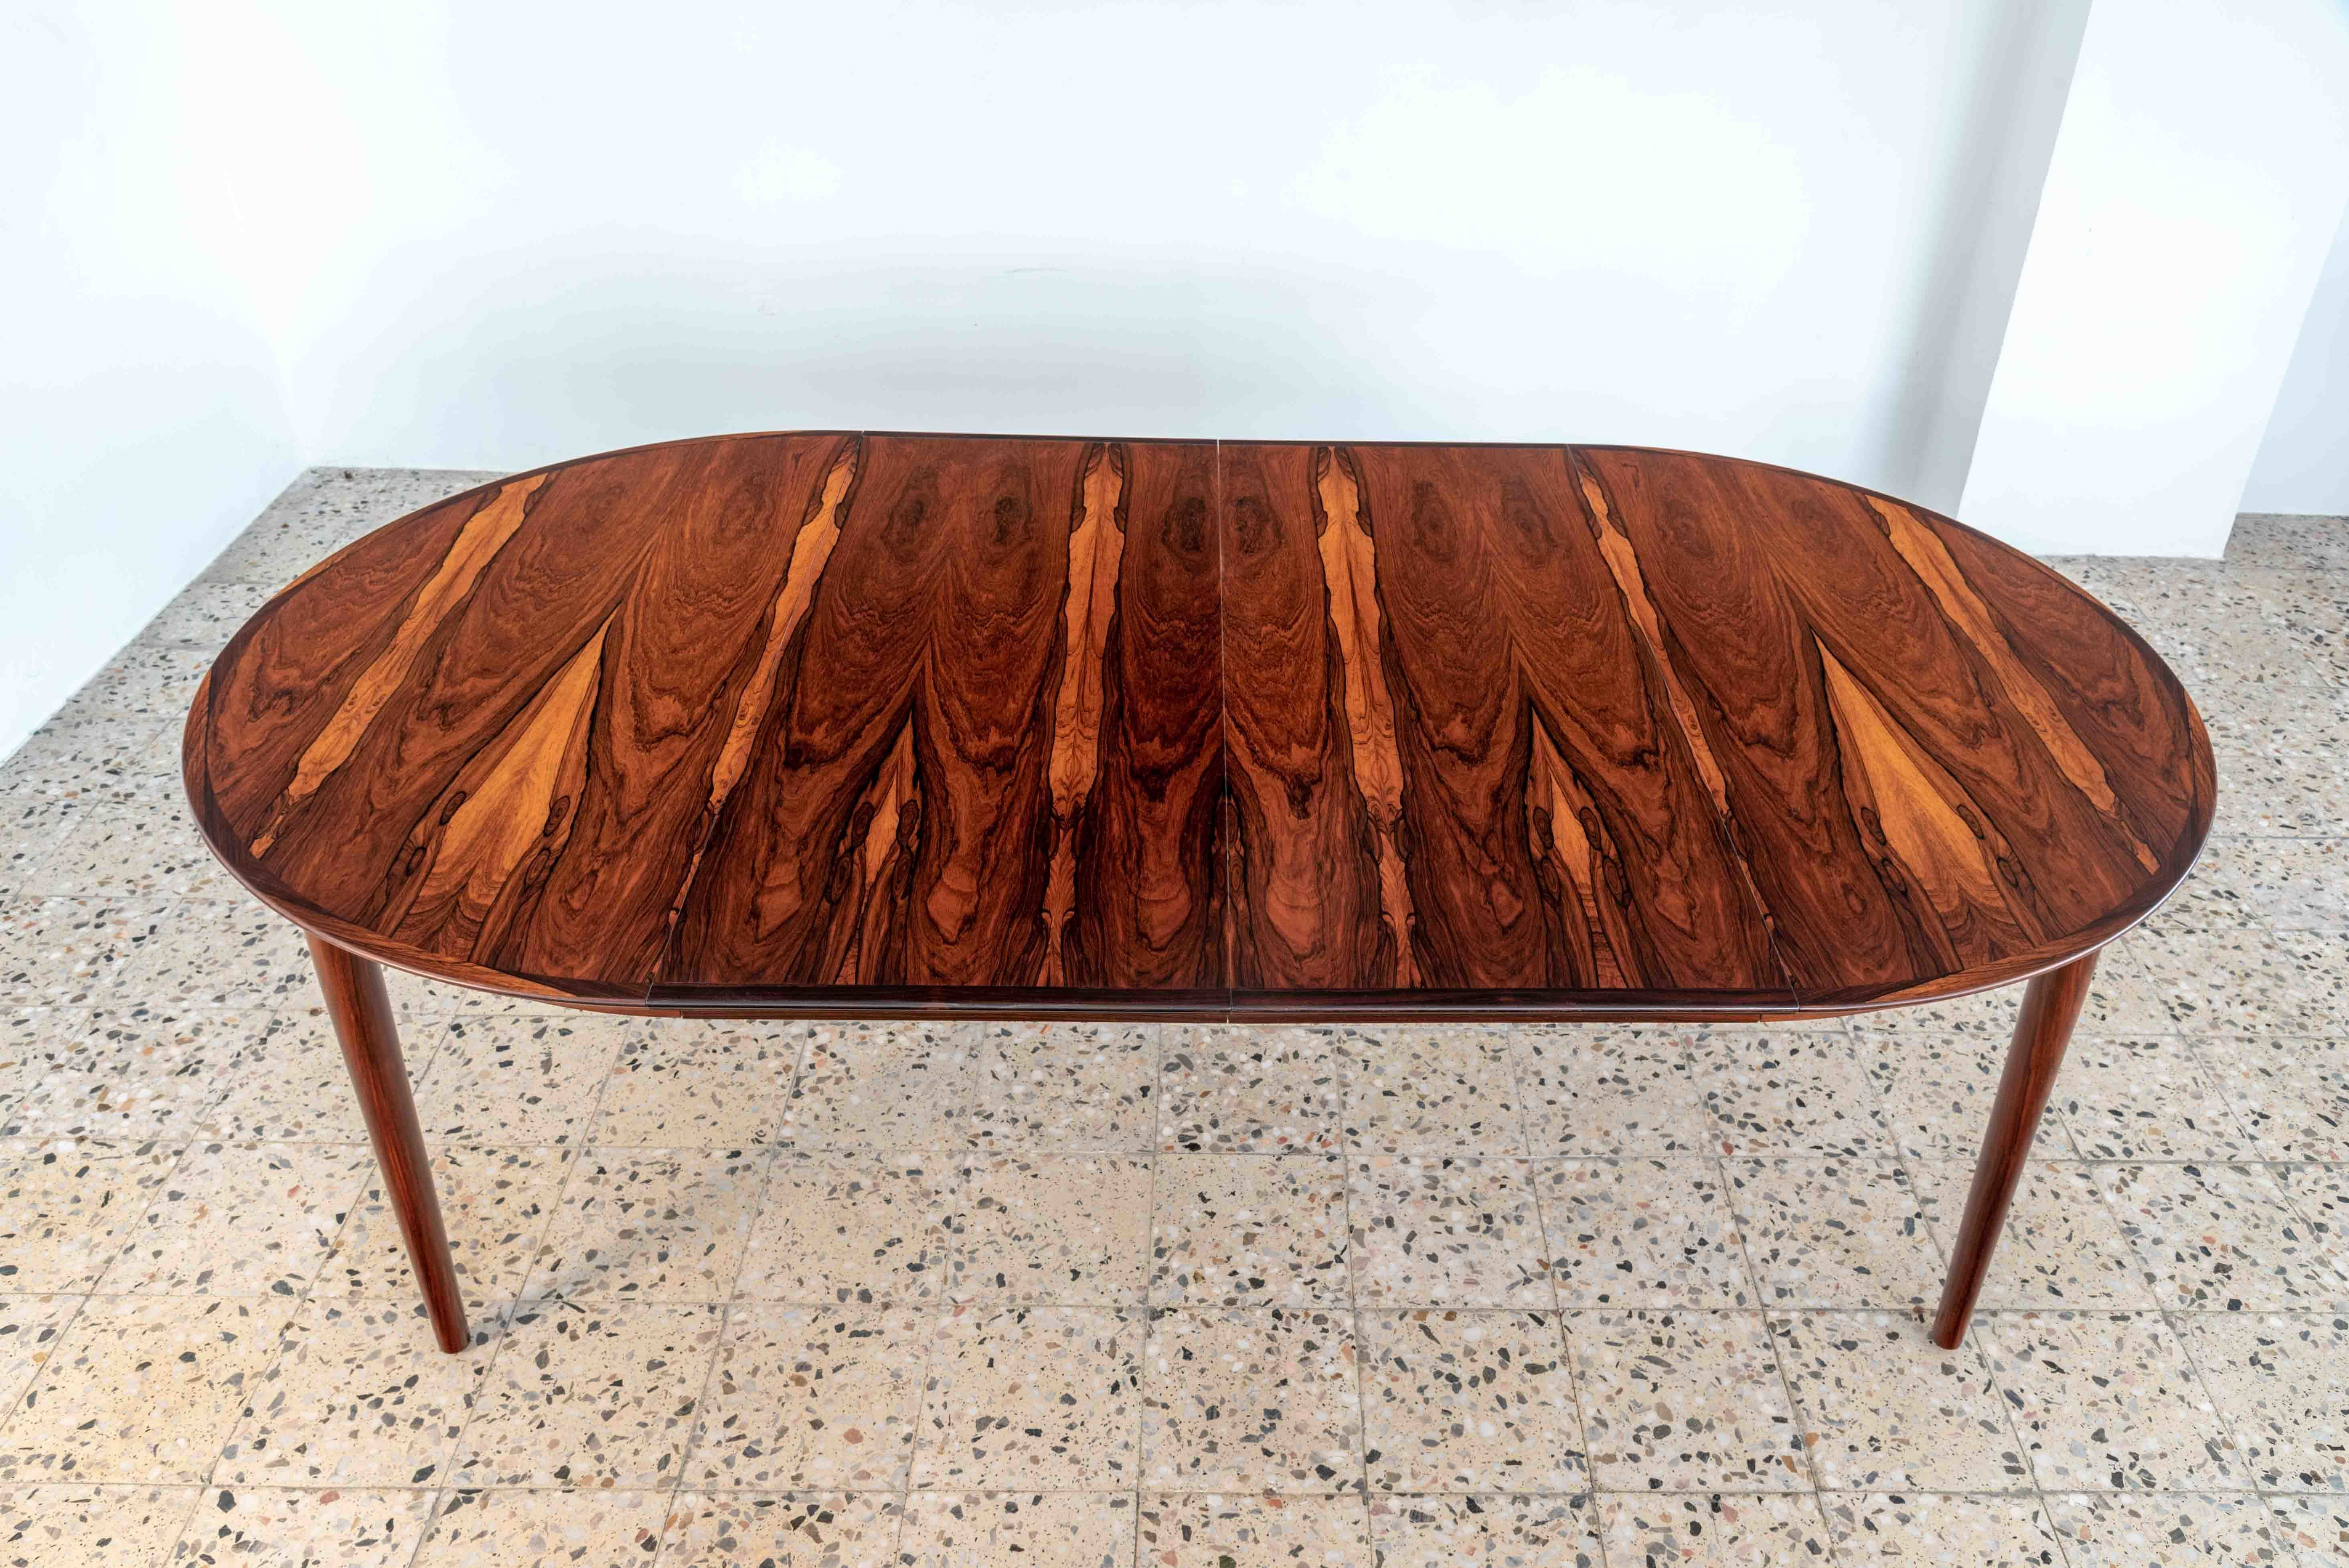 Model 204 Extendable Rosewood Dining Table By Arne Vodder For Sibast